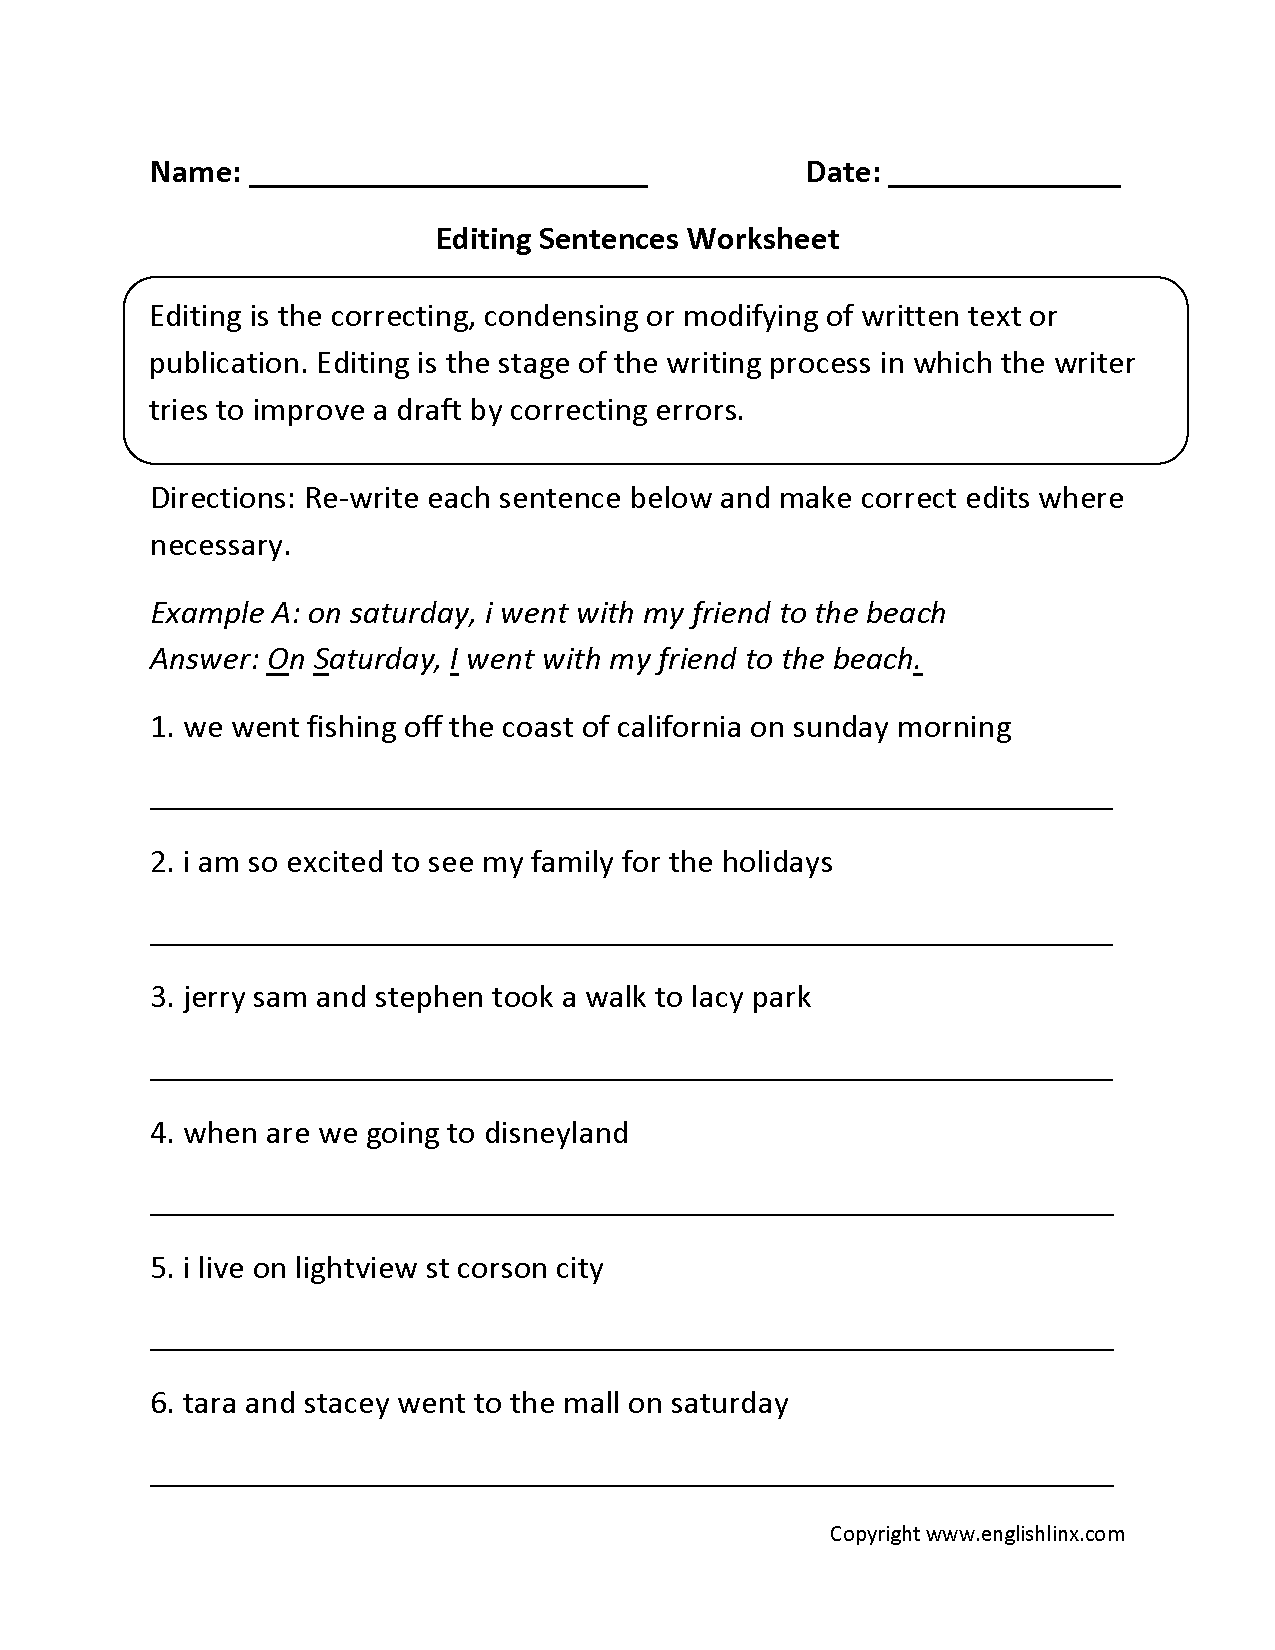 Sentence Correction Worksheets For 3rd Grade: Grammar Correction Worksheets 2nd Grade   Worksheet Pages,